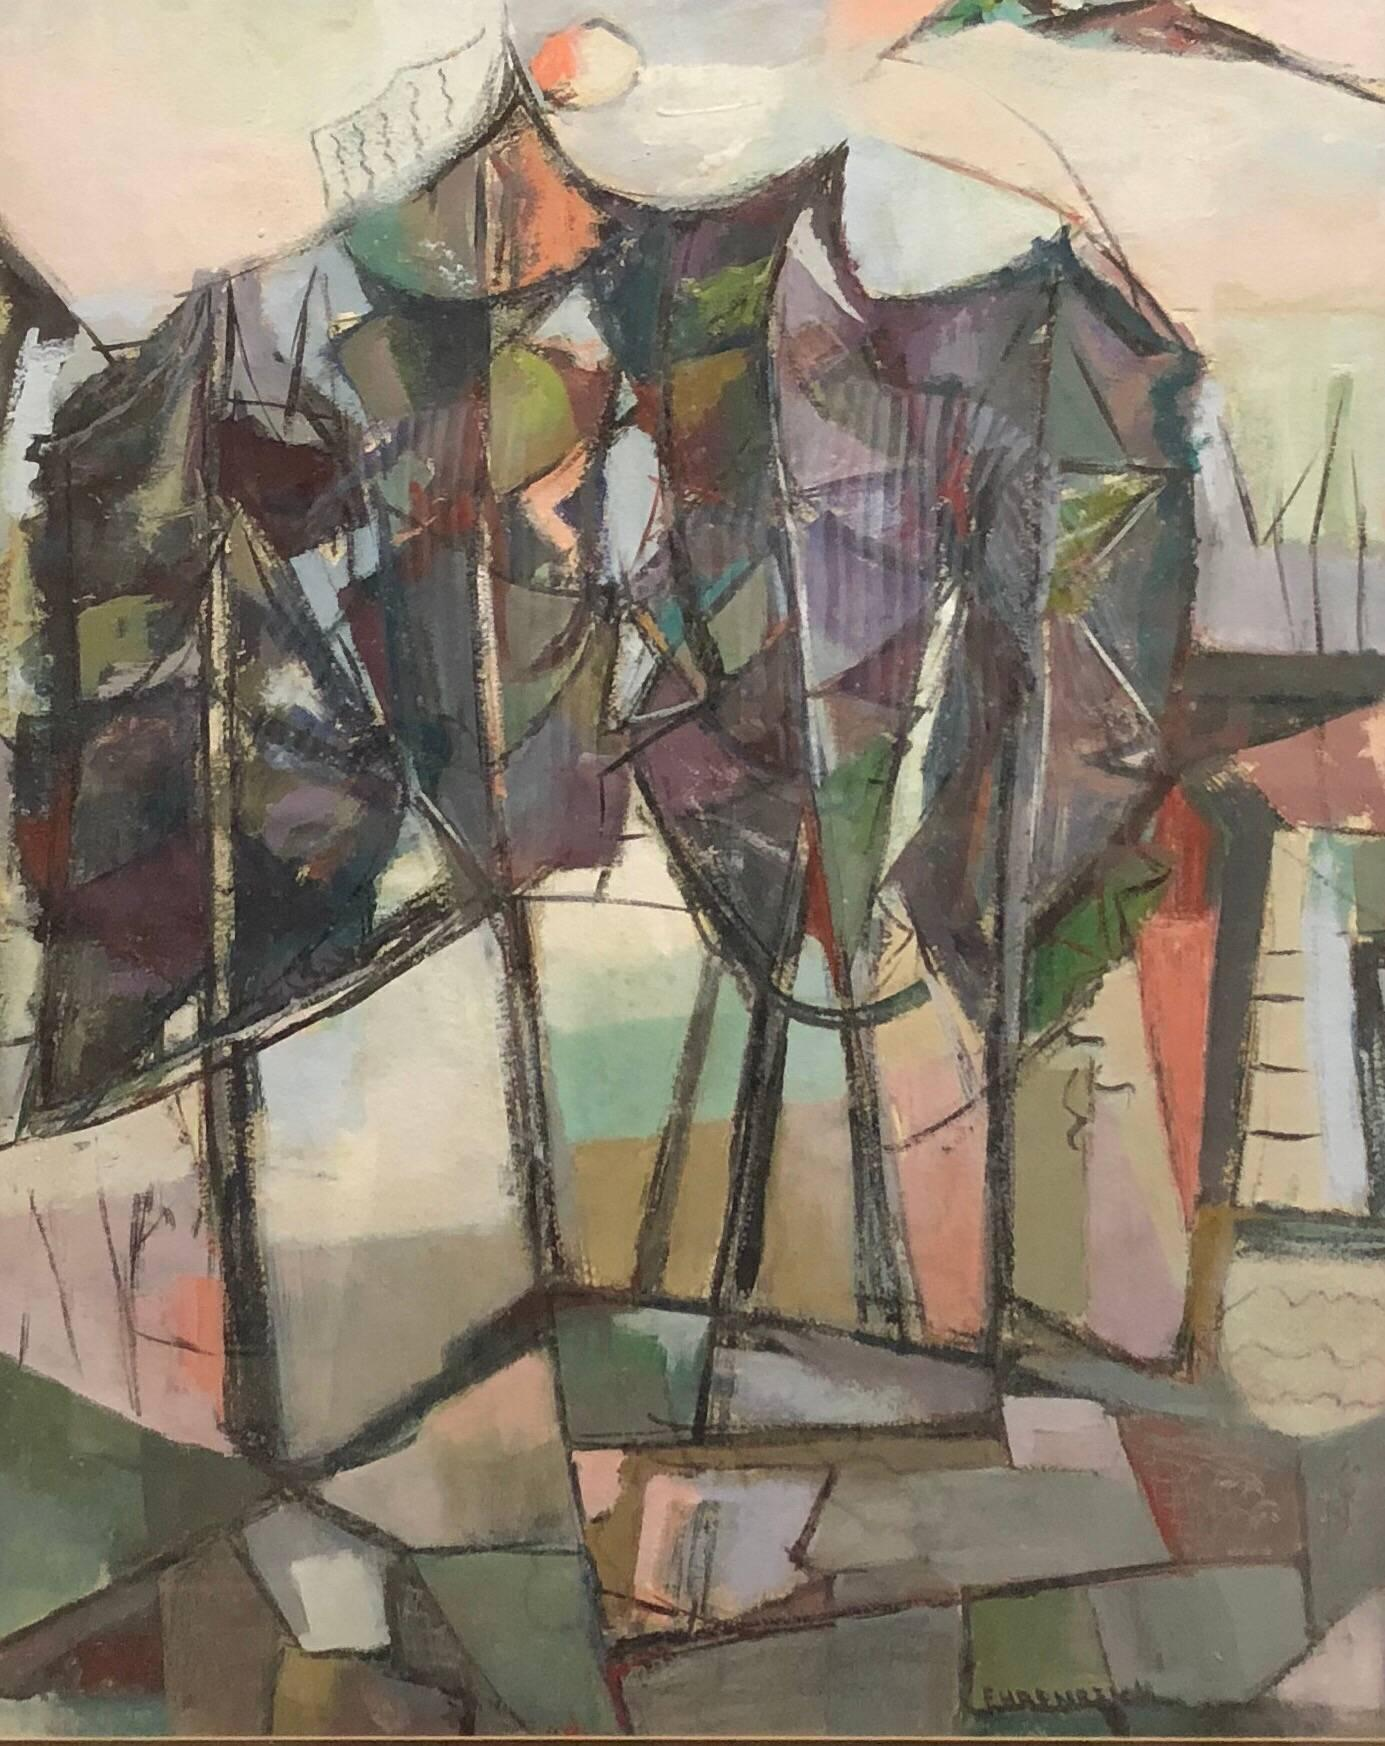 American Woman Modernist Oil Painting Abstract Cubist Landscape